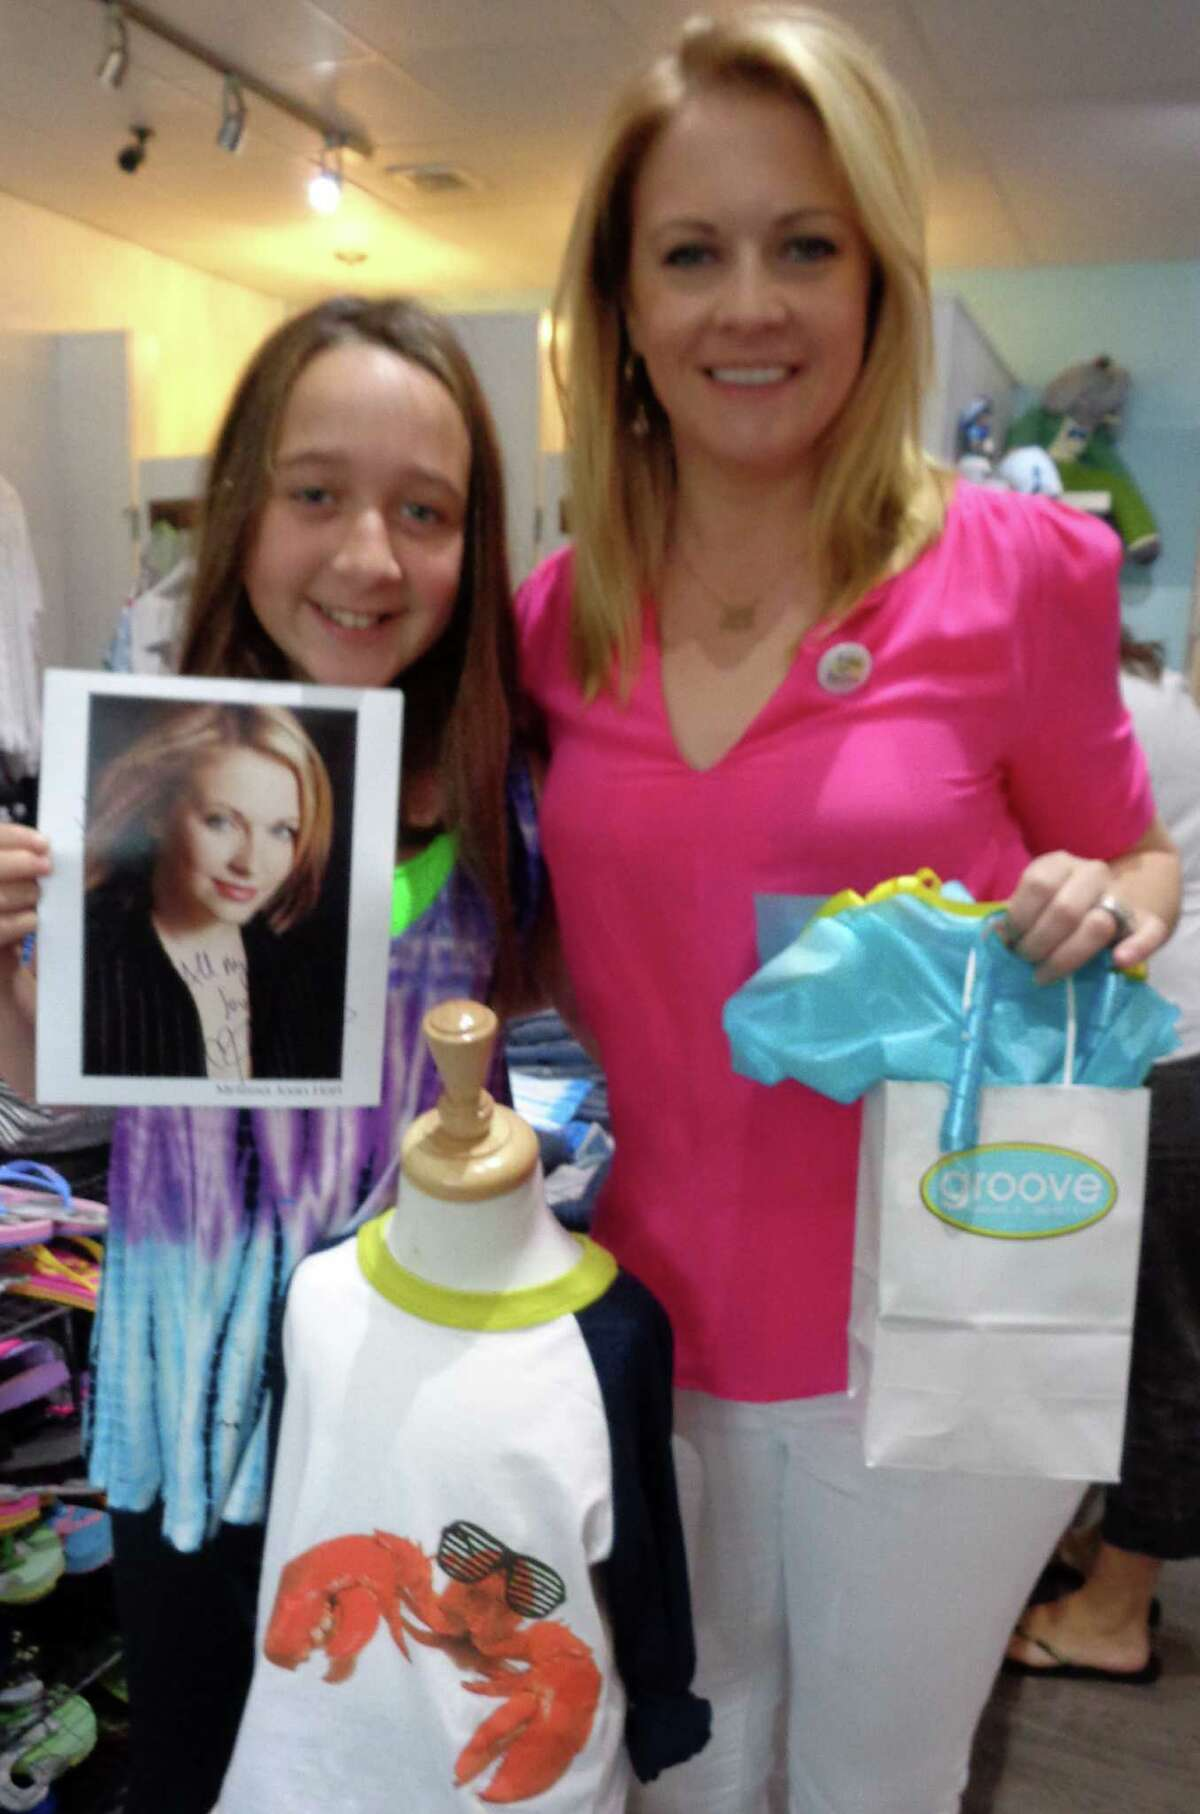 Hannah Sharkey, 11, of Westport, was thrilled to meet the star of her favorite TV show,